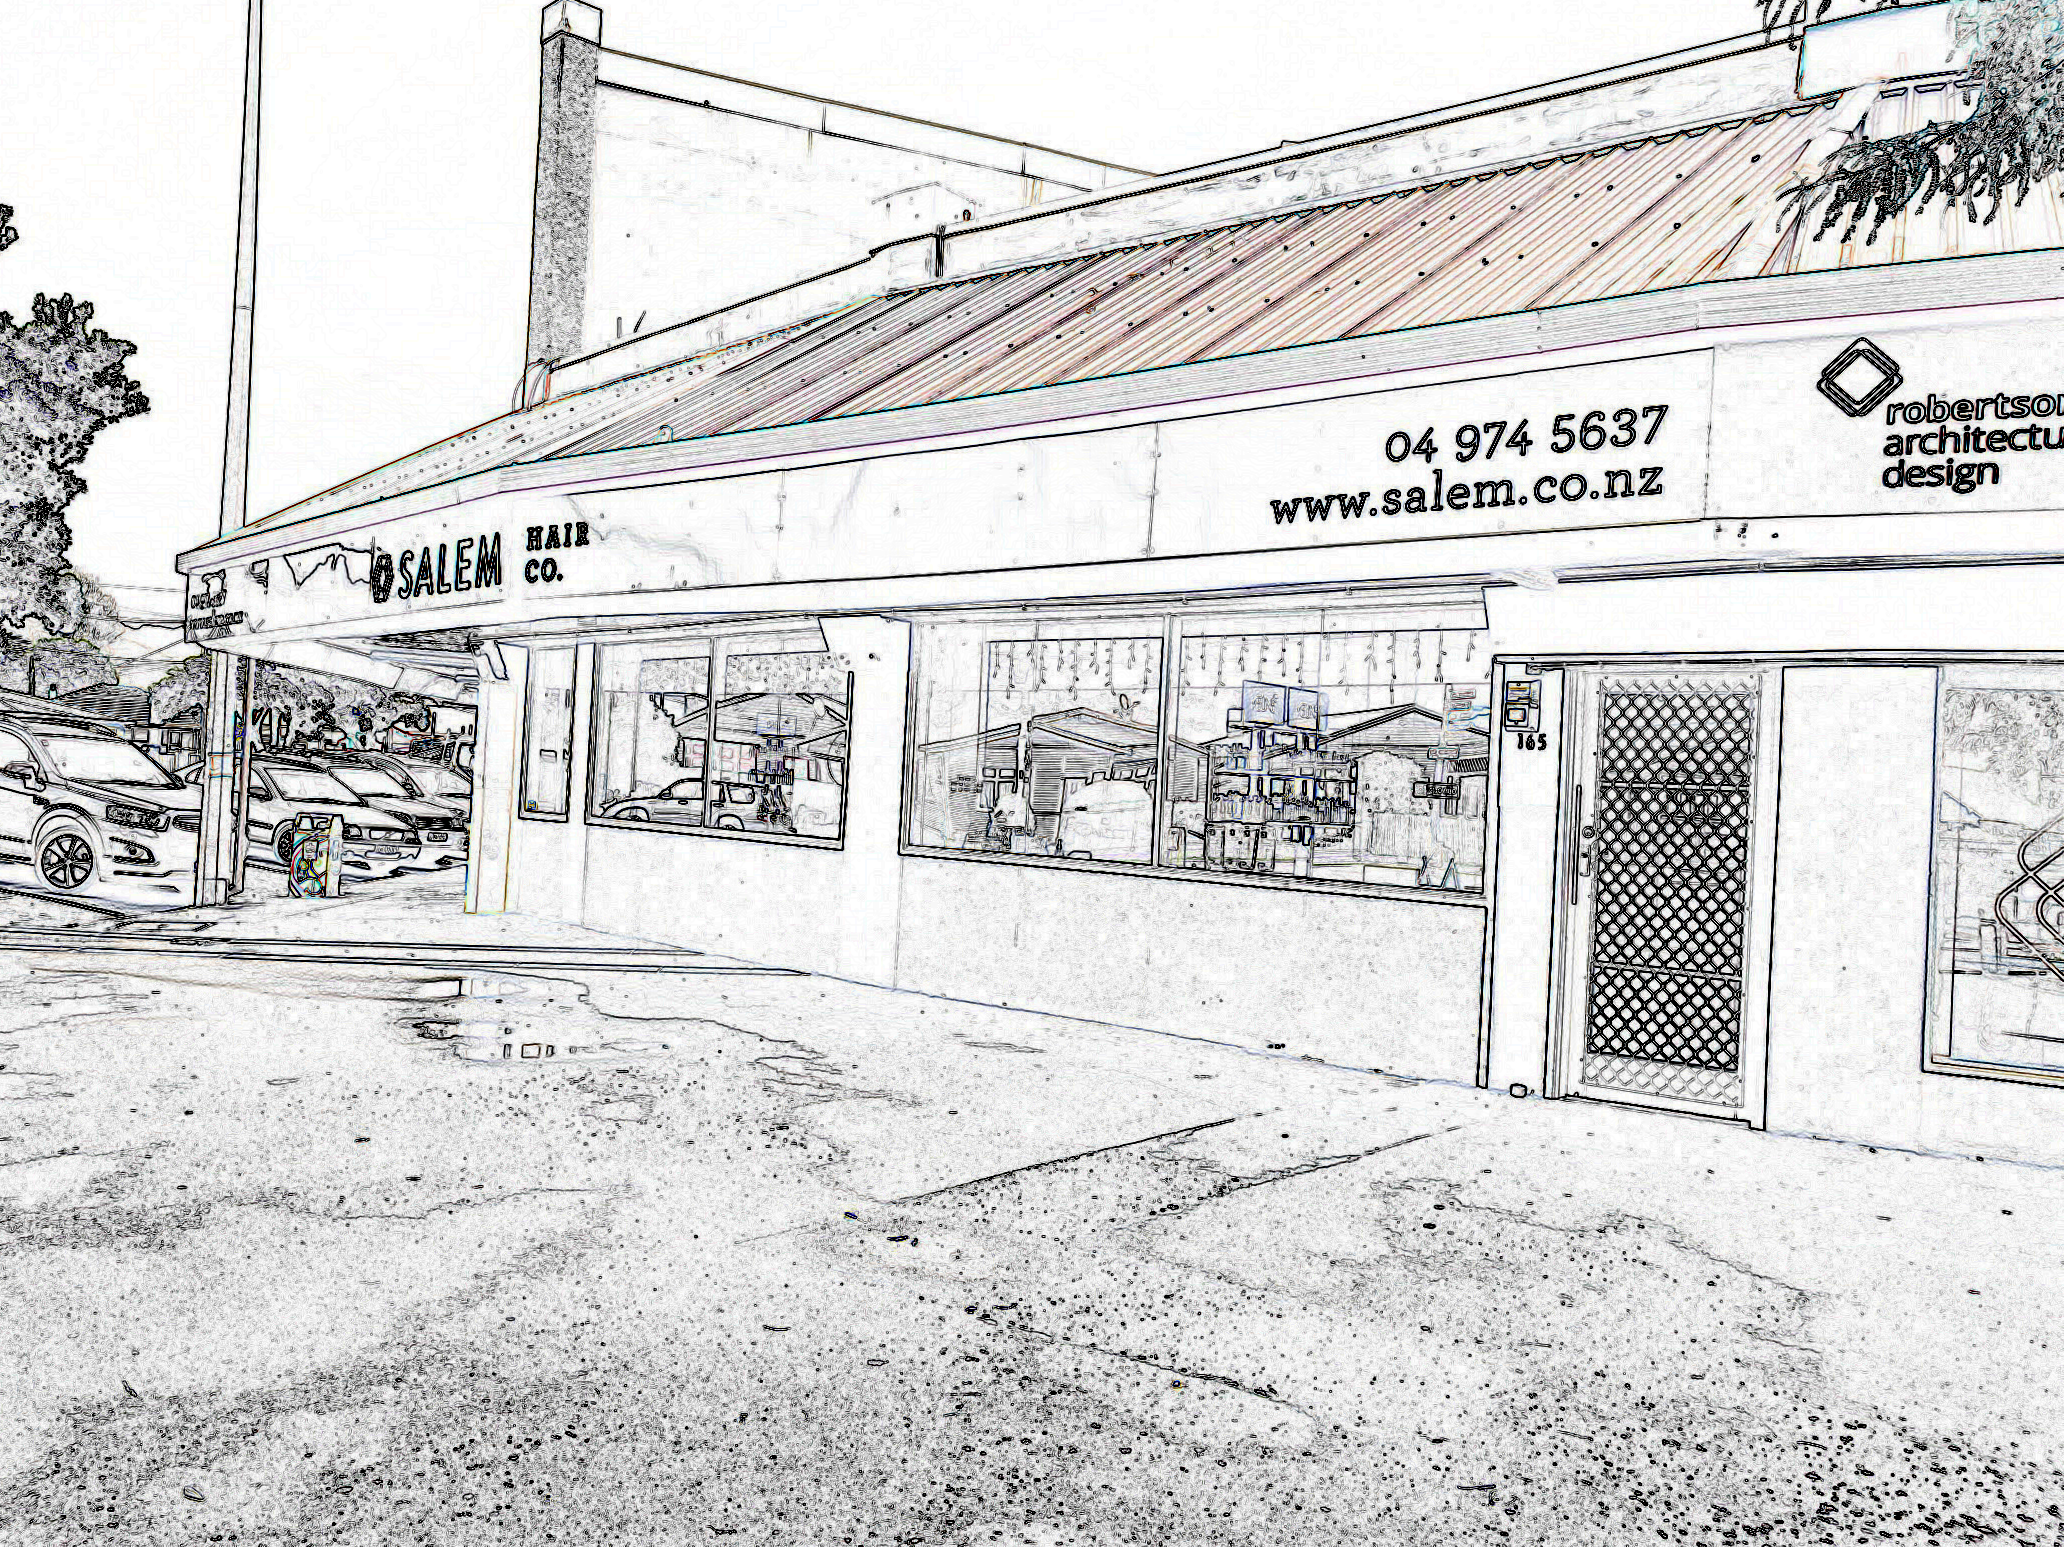 outside of the shop Salem Hair Co. 165 Randwick Road Moera turned into a line drawing